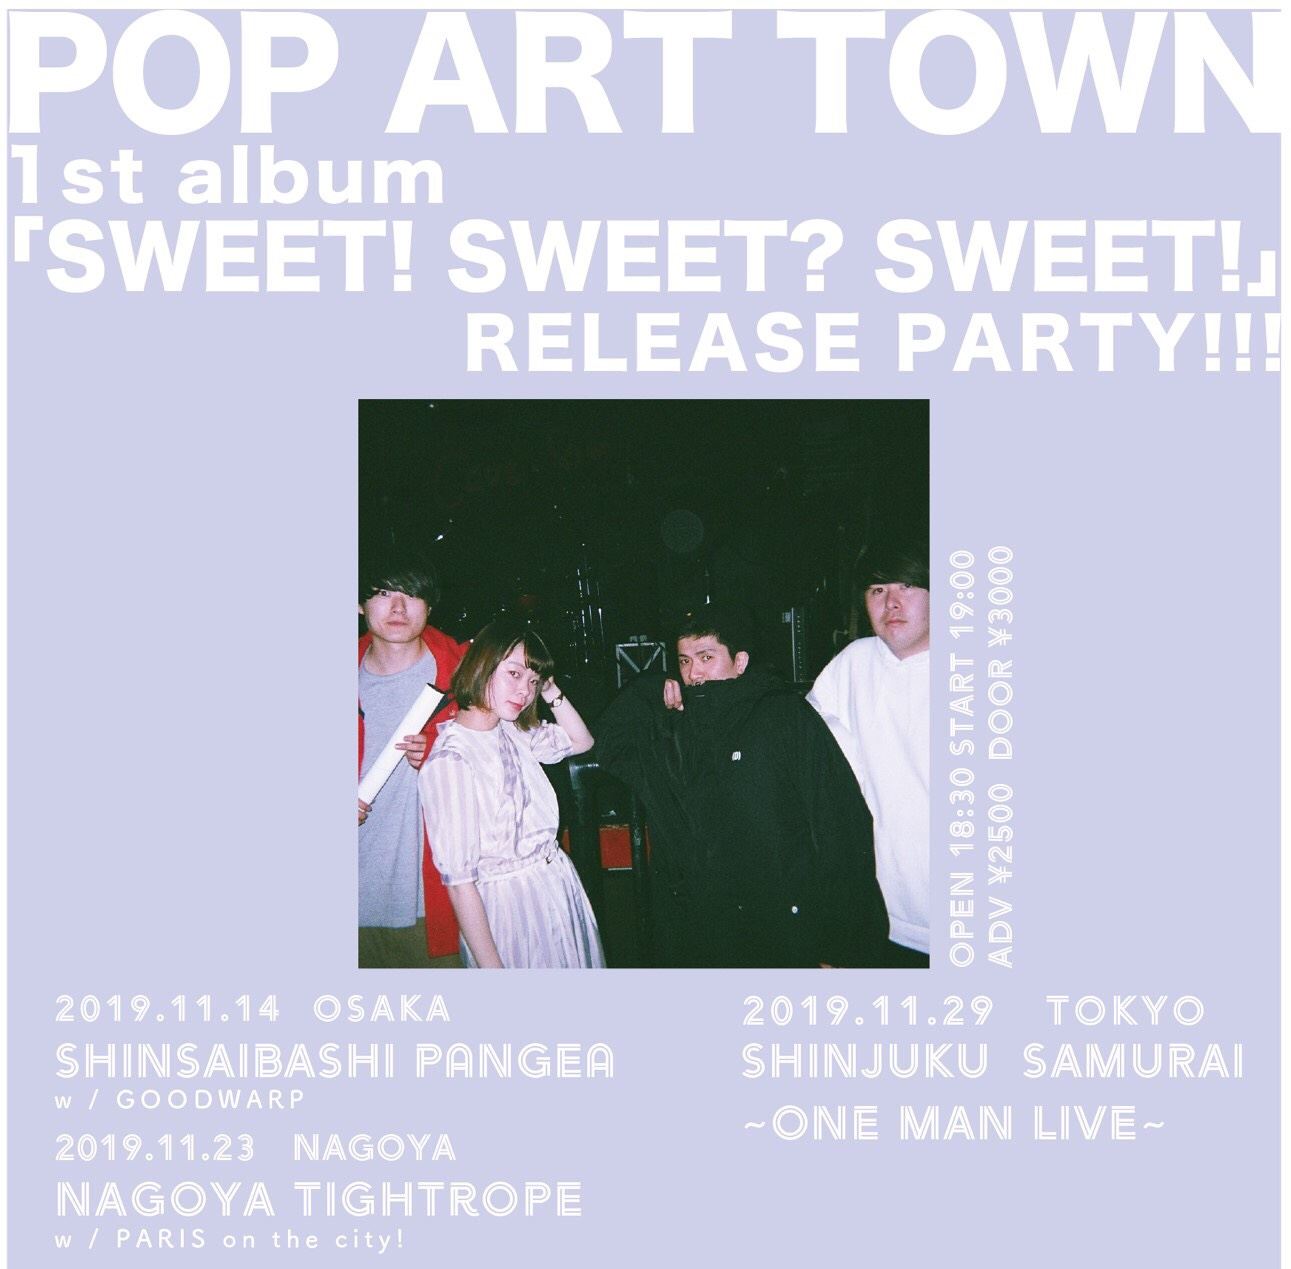 POP ART TOWN 1st Album 「SWEET! SWEET? SWEET!」release party! 東京編〜ONE MAN LIVE!!〜